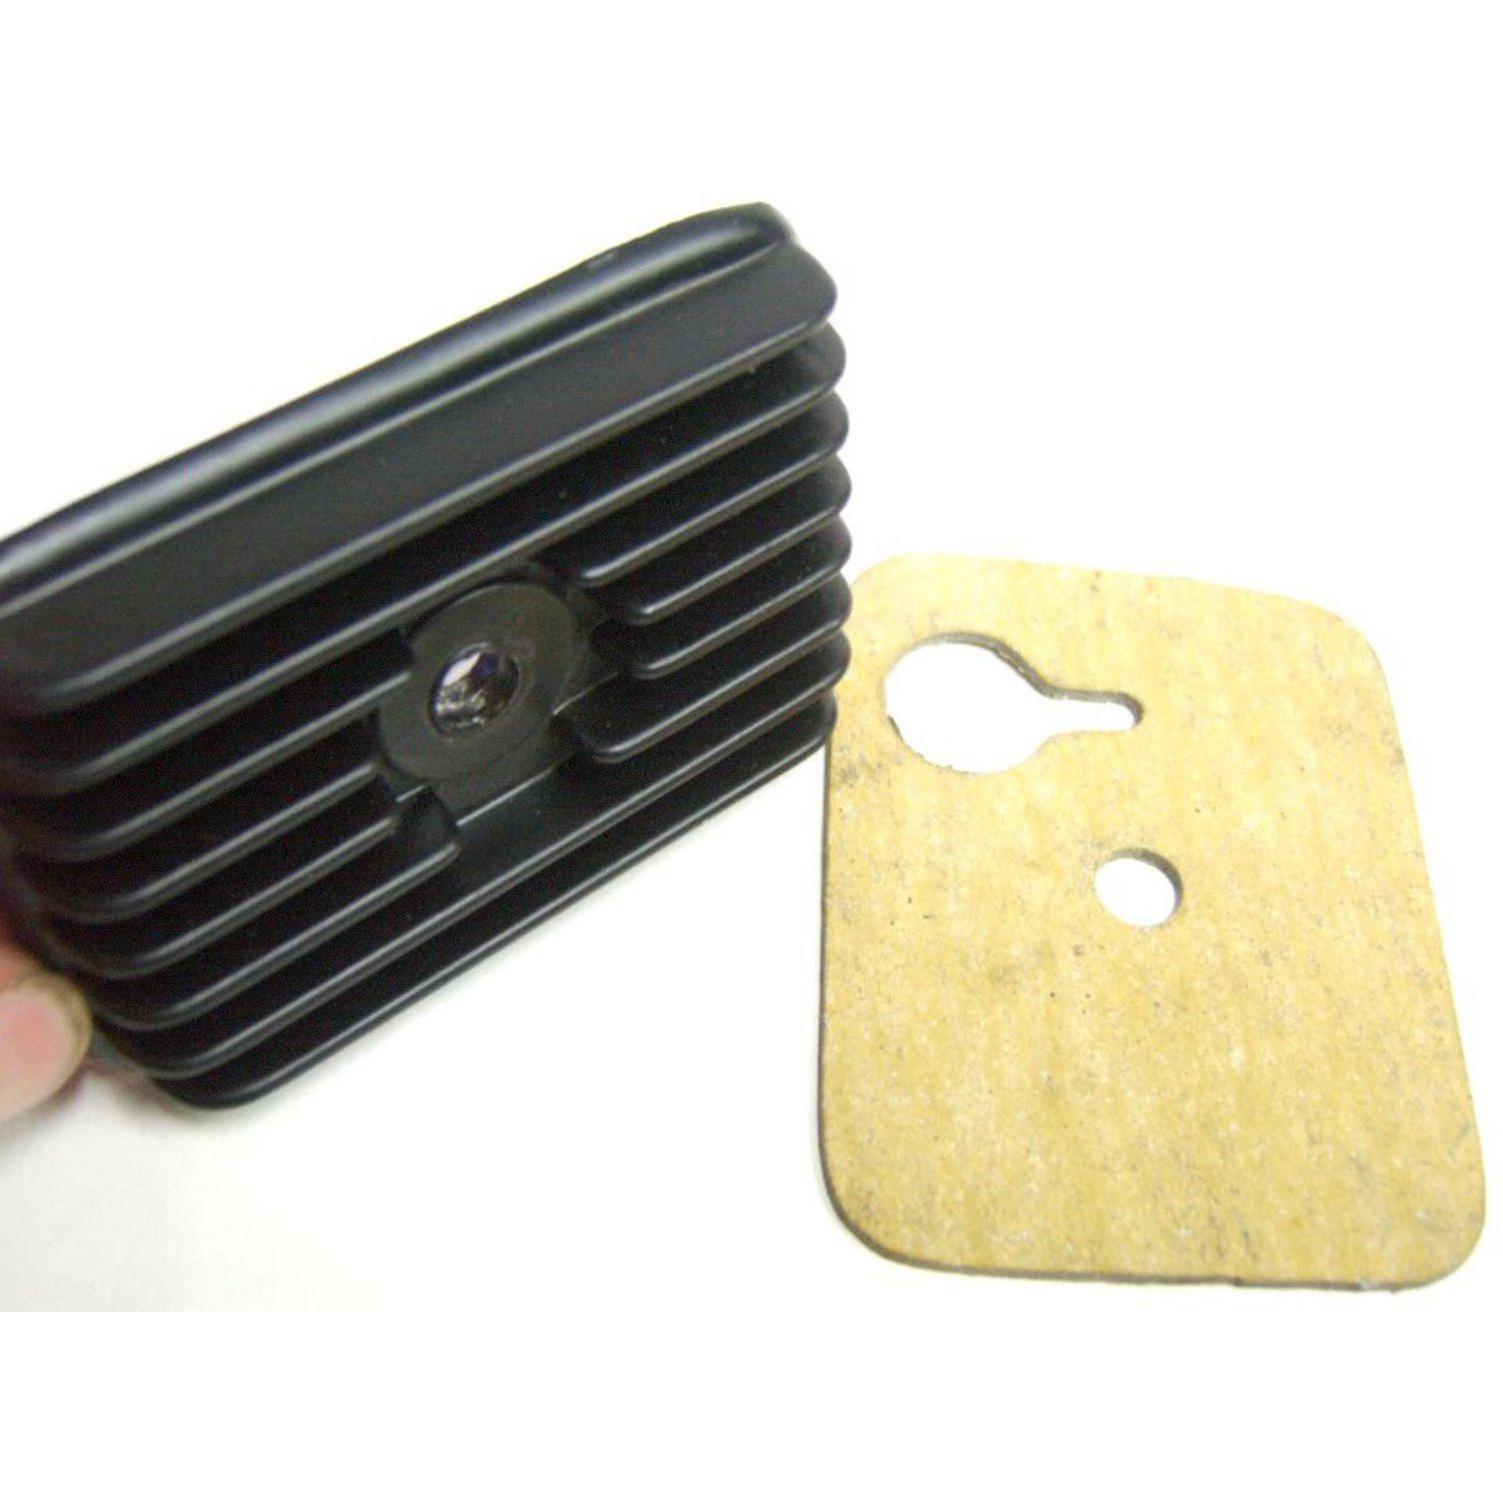 Autolite Generator Cover Primer Fits Indian Chief Scout Civil Military